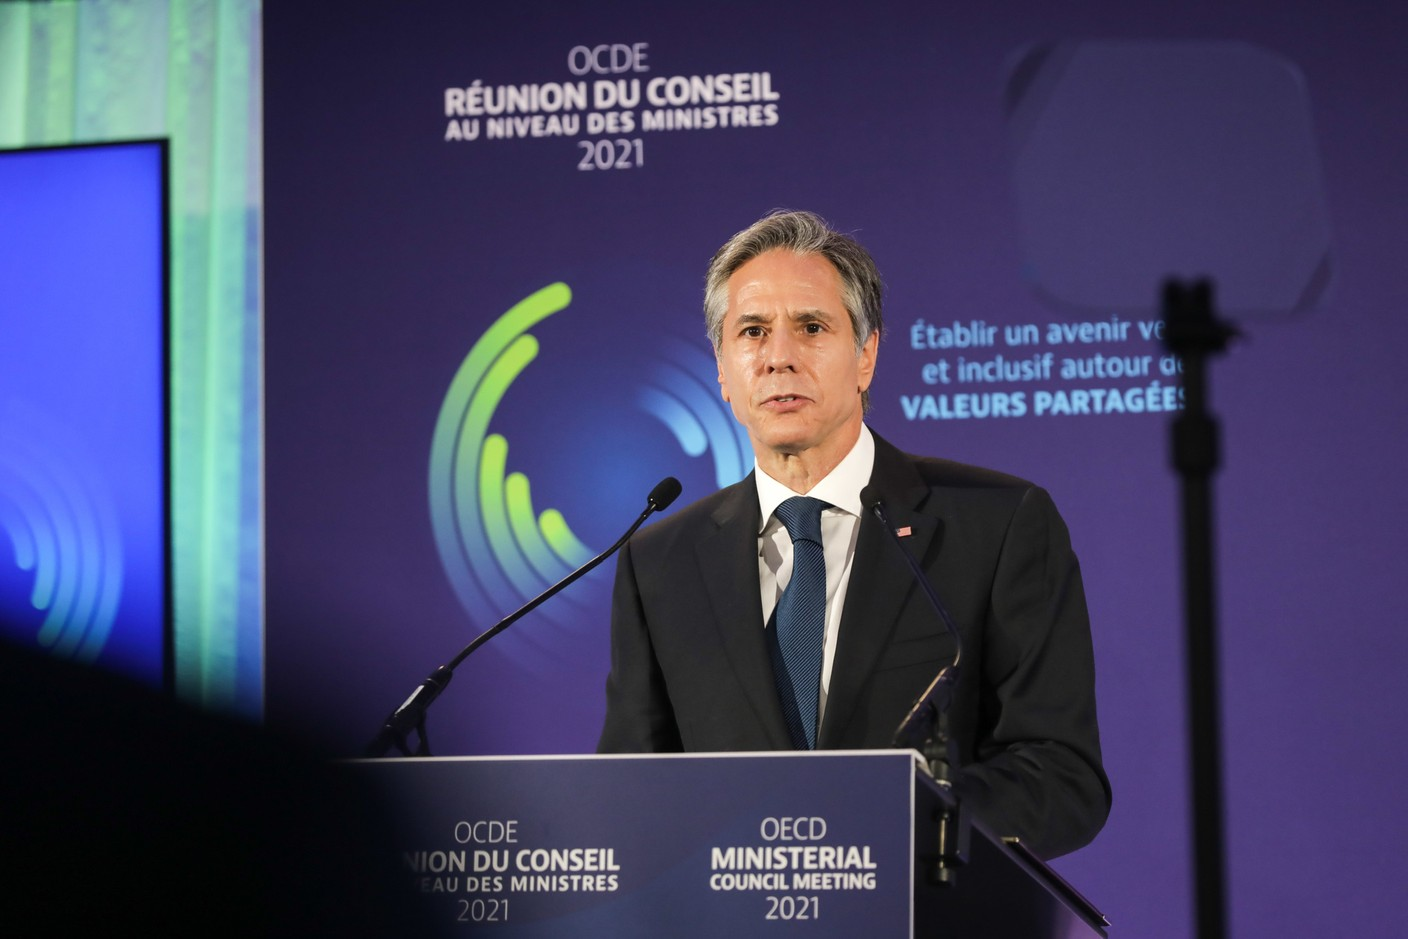 Antony Blinken, Secretary of State of the United States of America and chair of the ministerial-level council meeting SIP/LUC DEFLORENNE